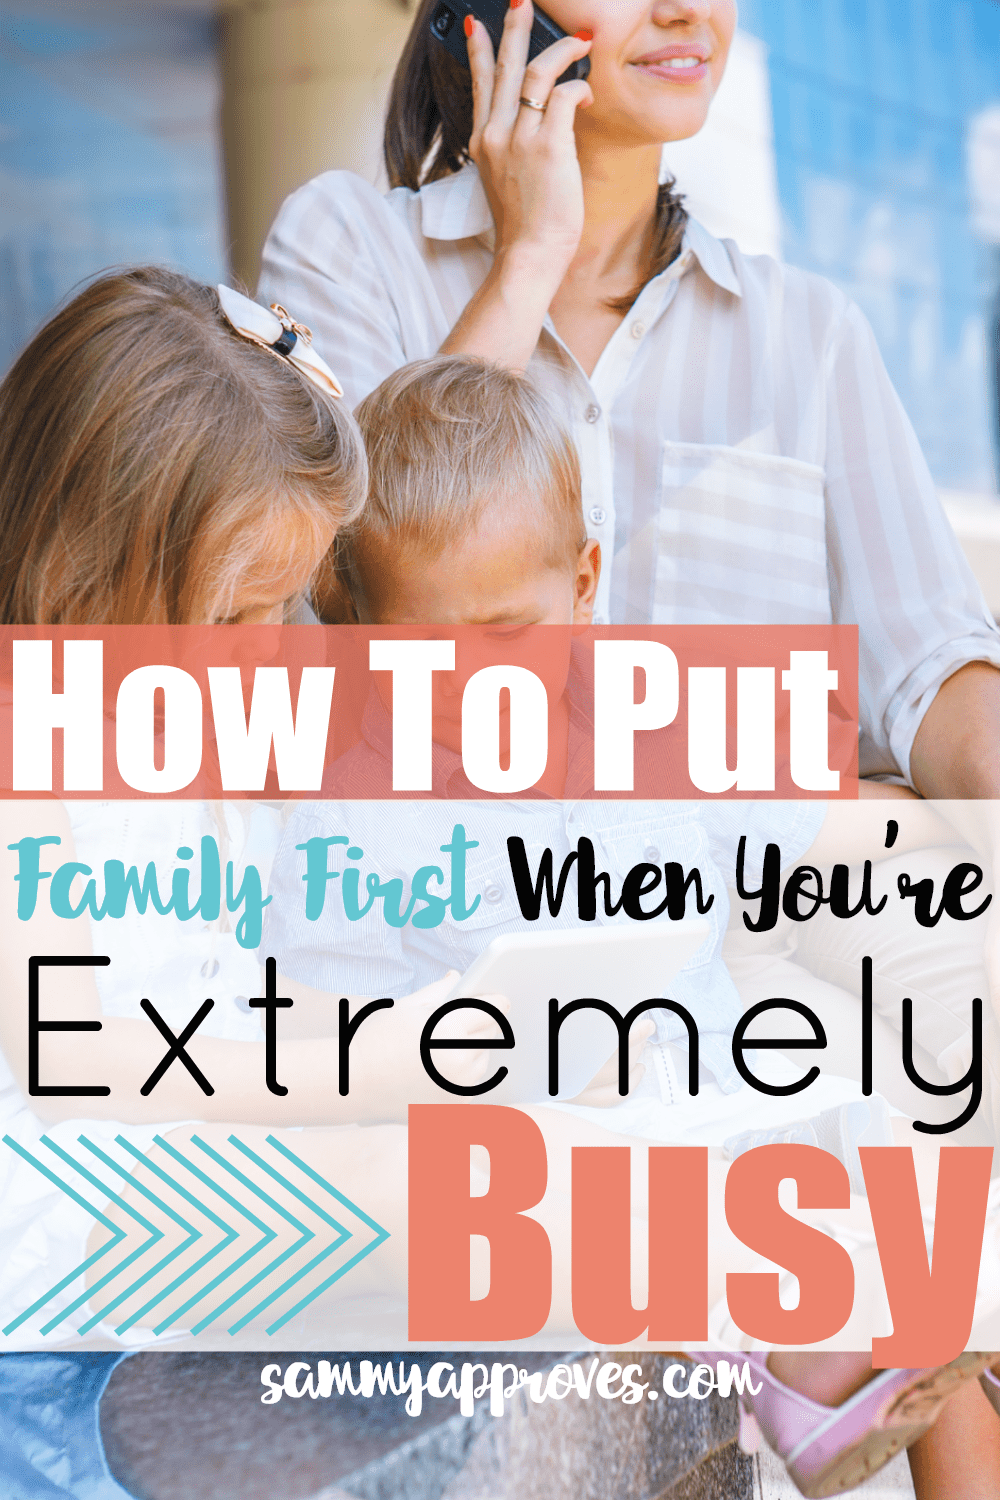 How to Put Family First When You're Extremely Busy